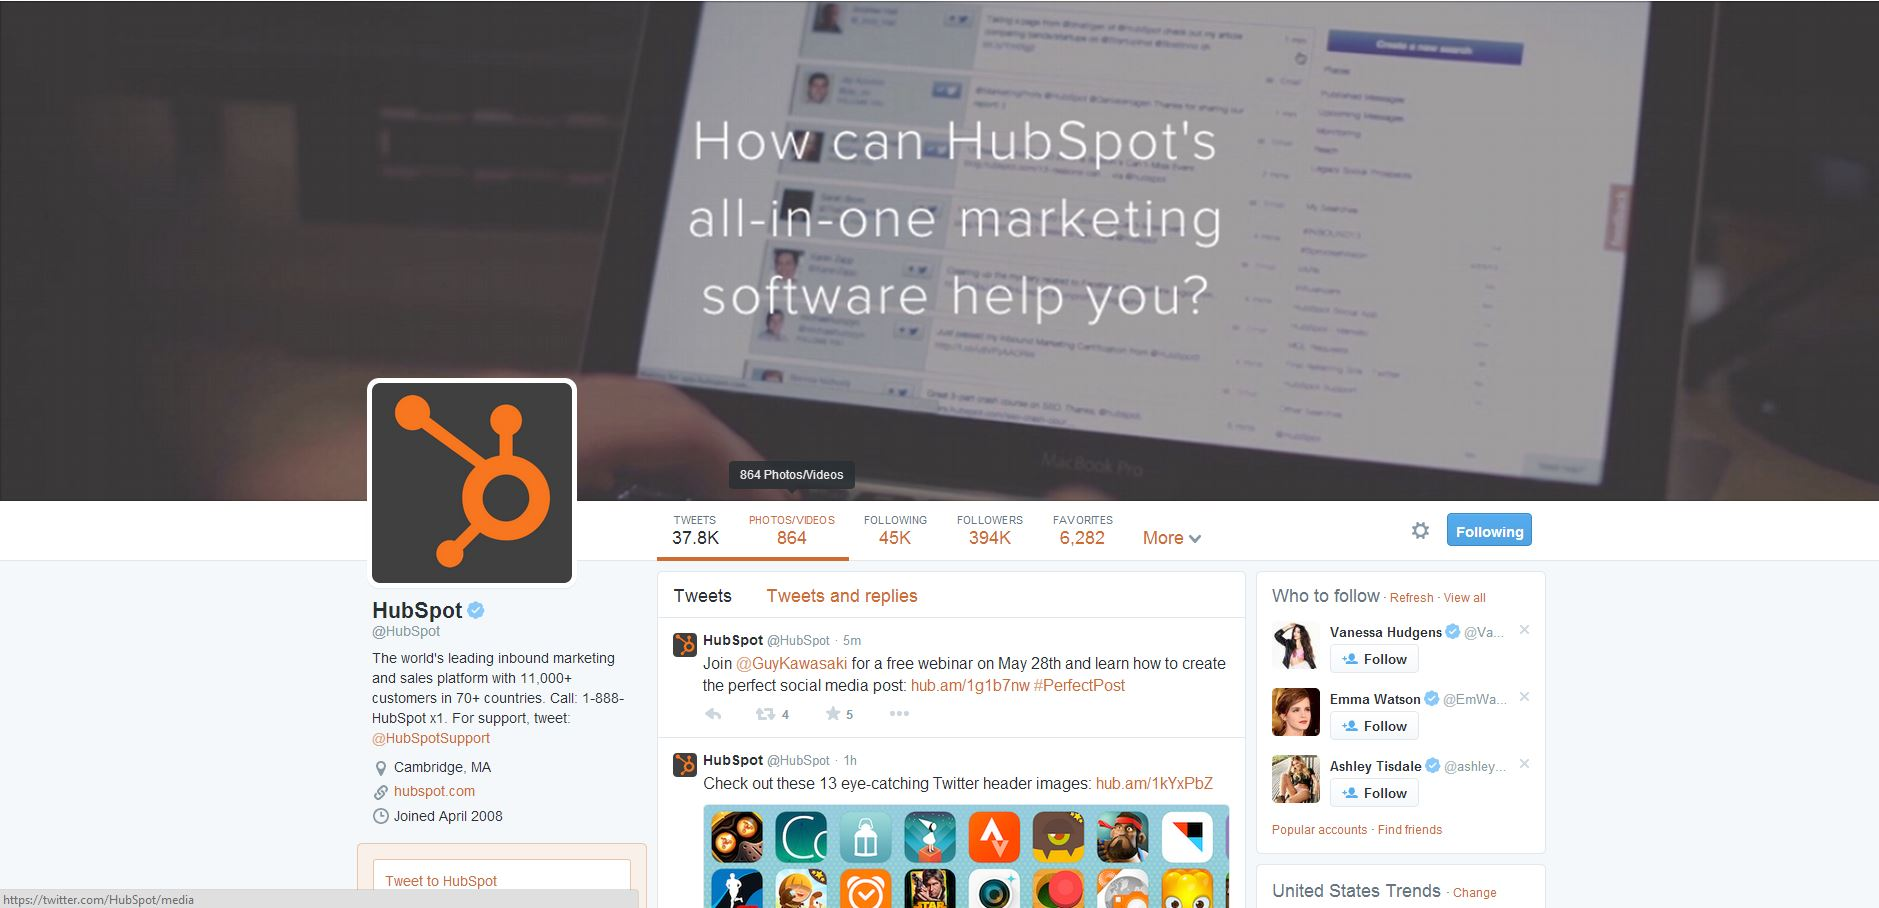 hubspot-twitter-screen-shot